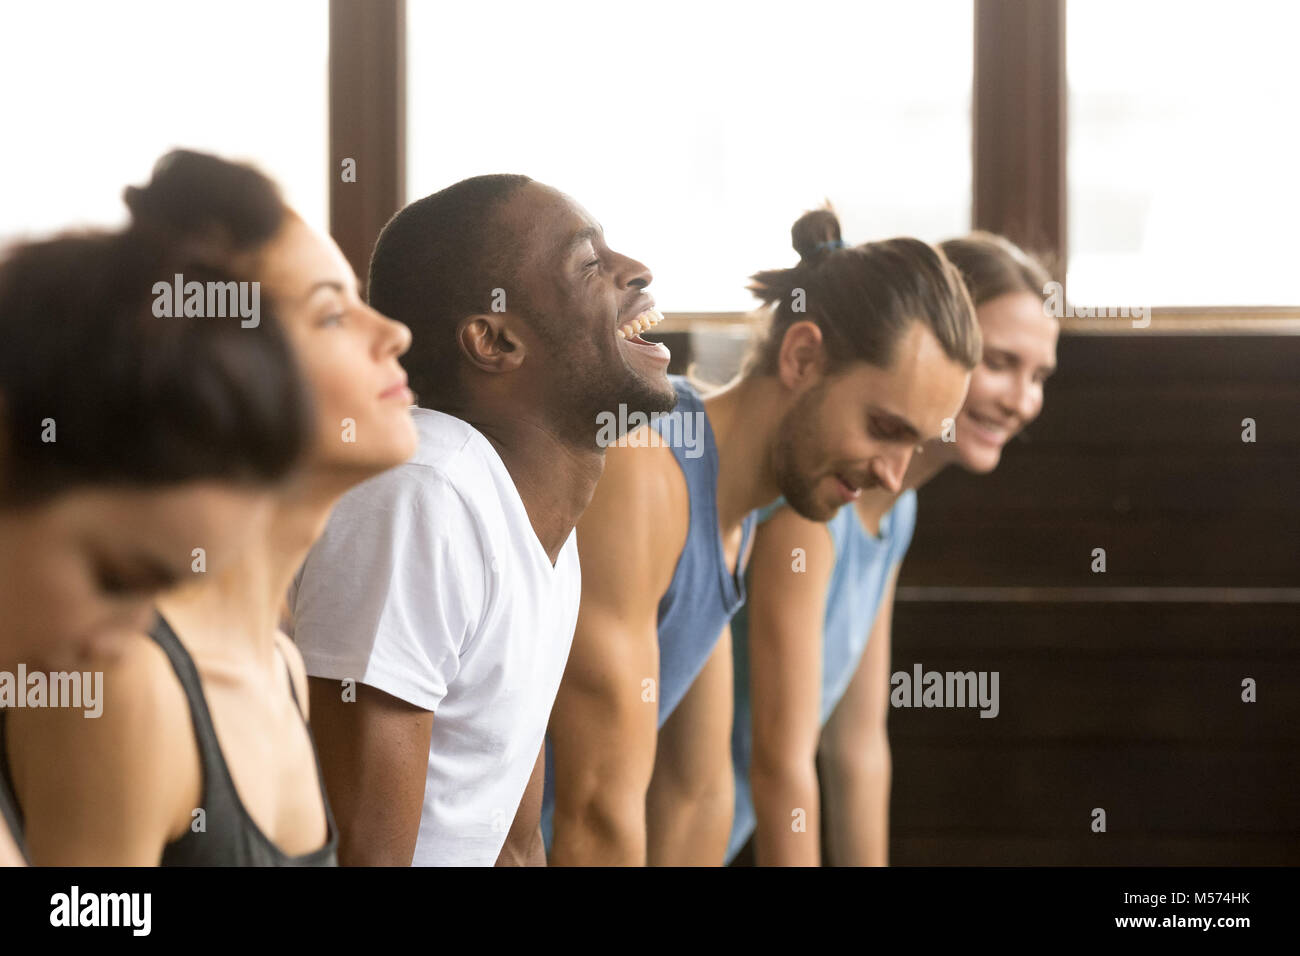 African man laughing doing yoga or plank at group training - Stock Image